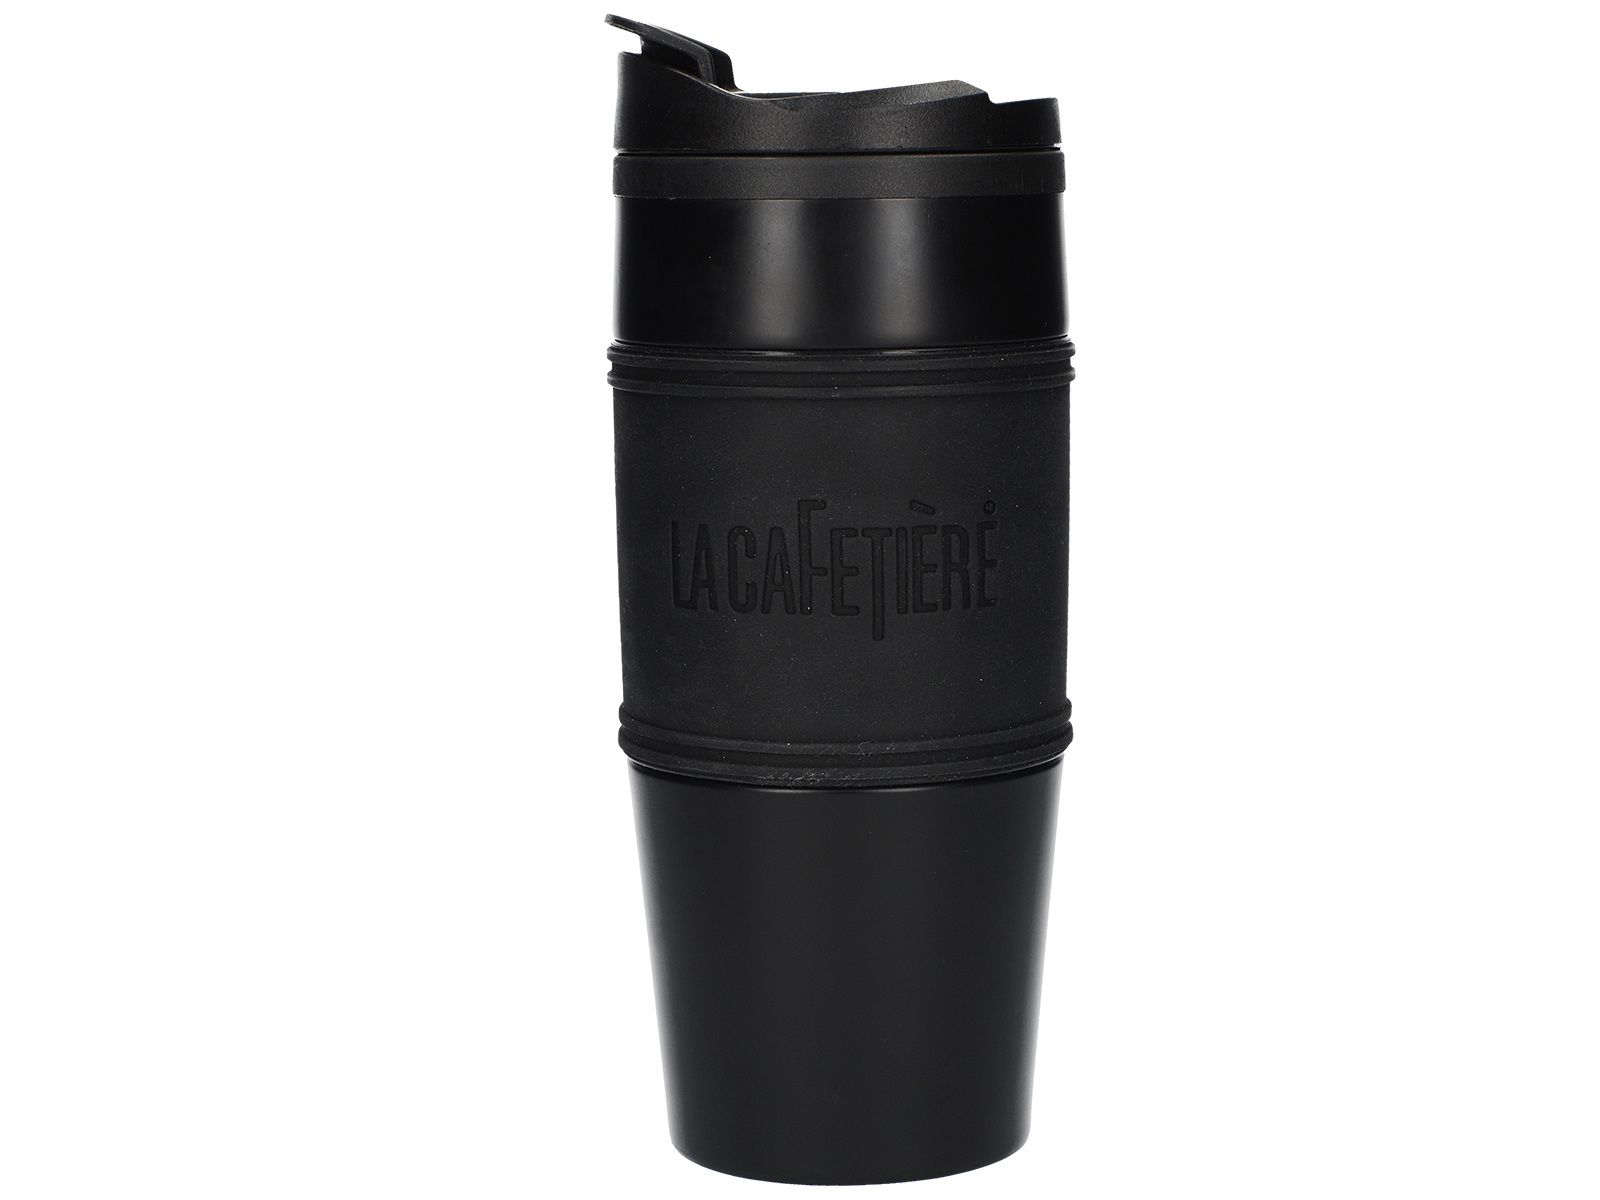 La Cafetiere 450ml Travel Flask Pp Inner Stainless Steel Outer Matt Black